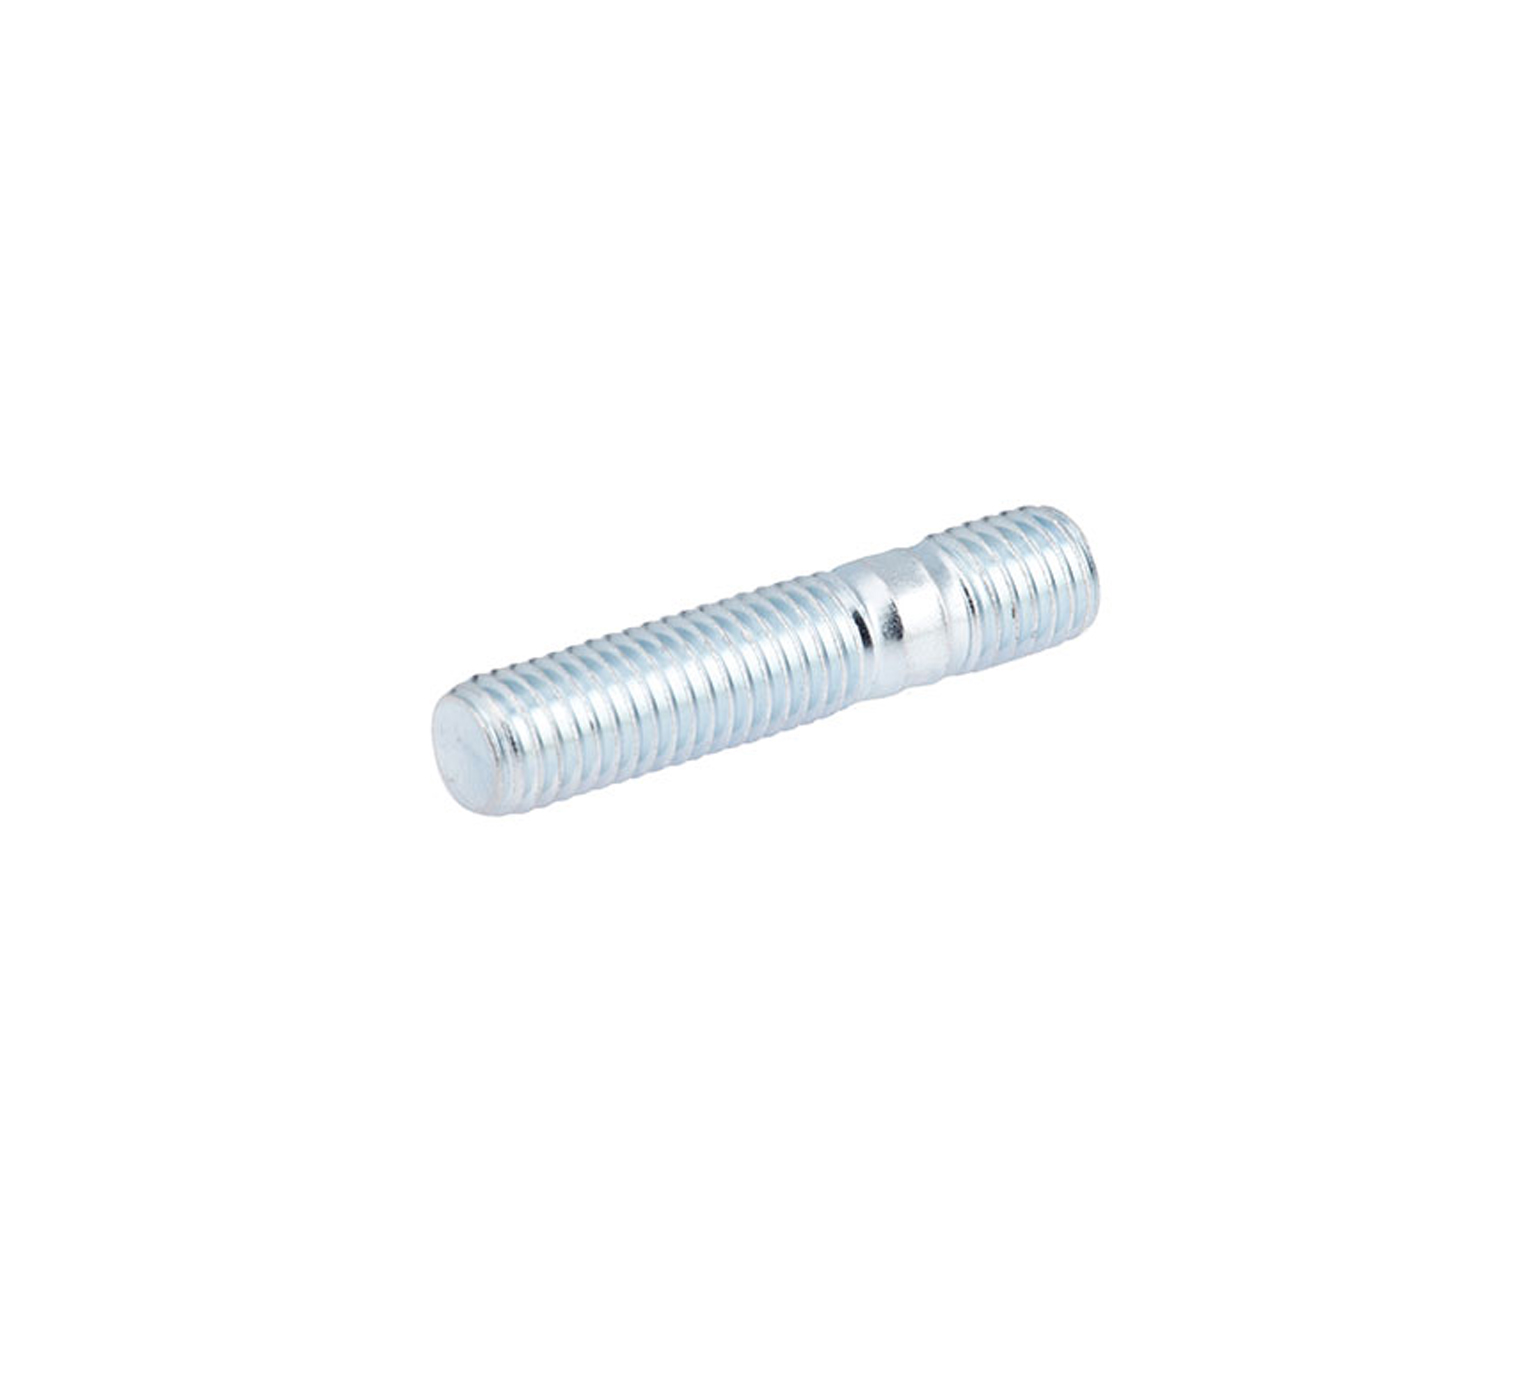 384442 Steel Stud - M10 Thread x 1.85 in alt 1